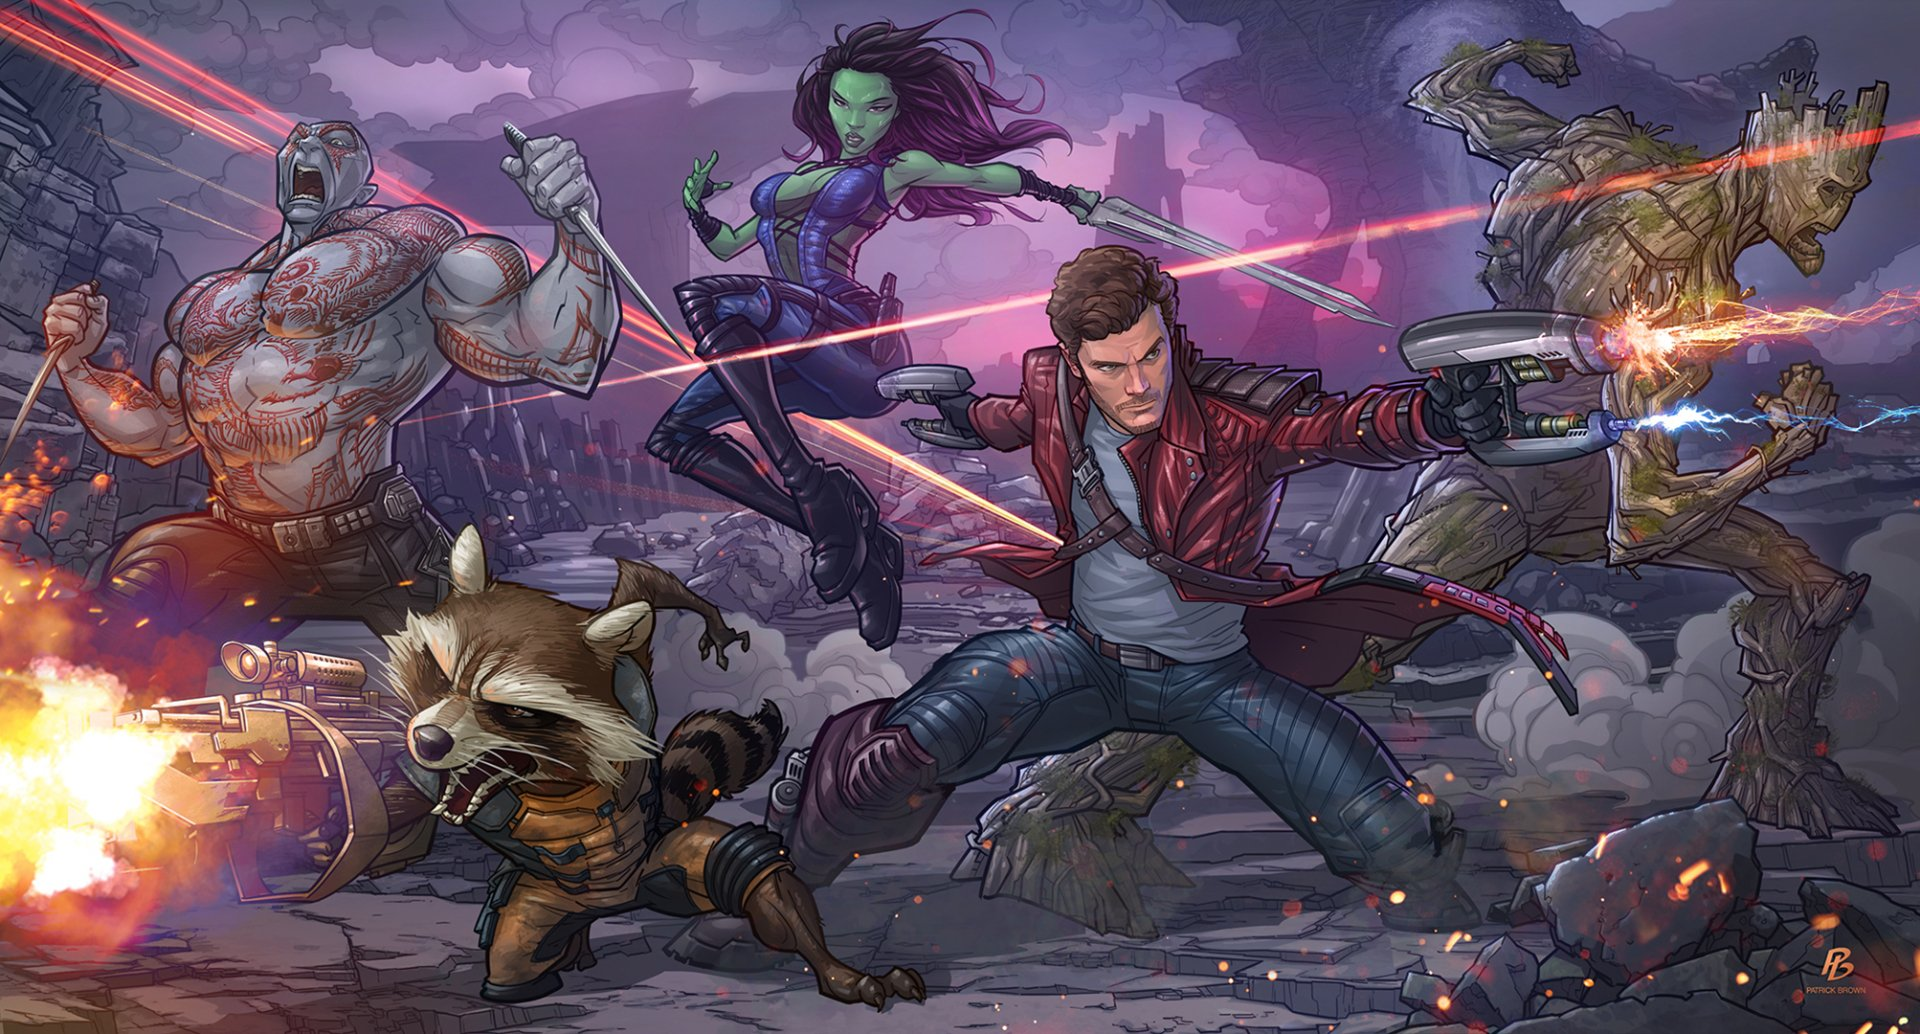 Comics - Guardians Of The Galaxy  Gamora Drax The Destroyer Peter Quill Rocket Raccoon Groot Comic Comics Galaxy Marvel Comics Rocket Star Lord Wallpaper